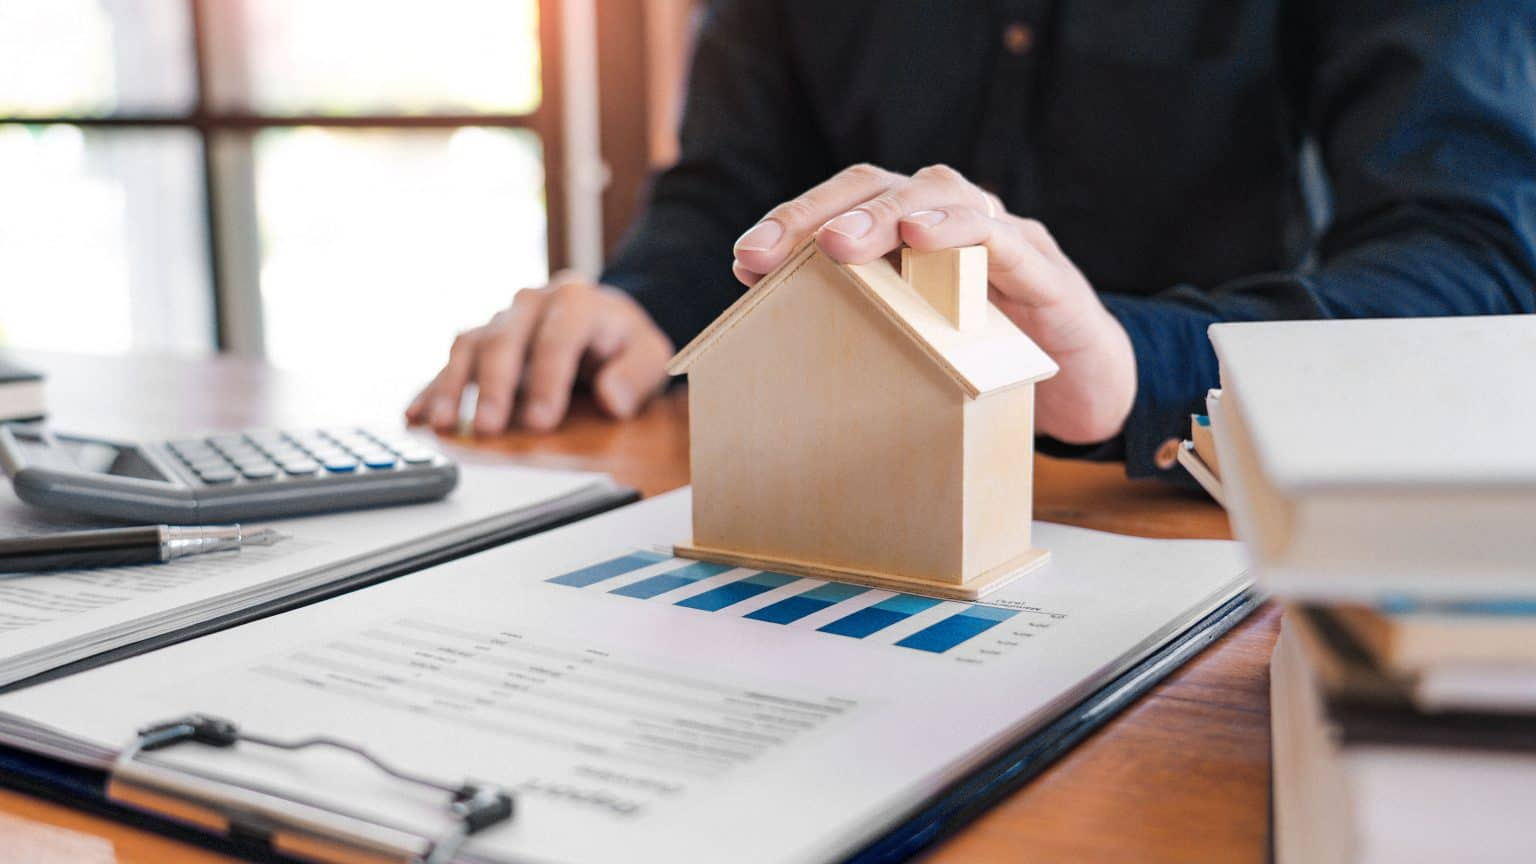 Reports show that australian property prices have significantly increased and property sales remain high